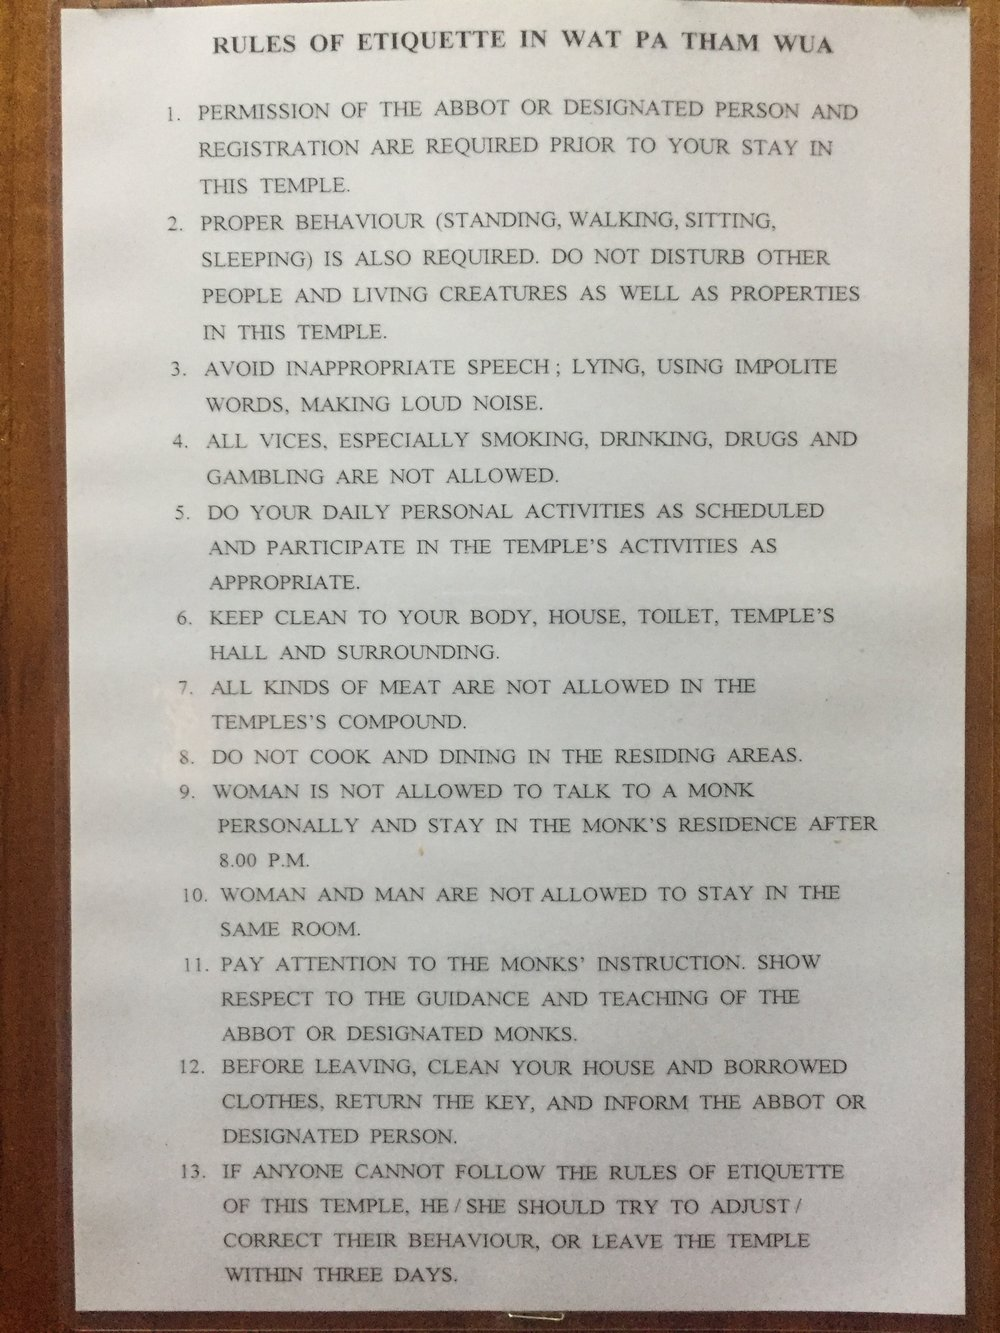 The rules. (Basically no fun...)